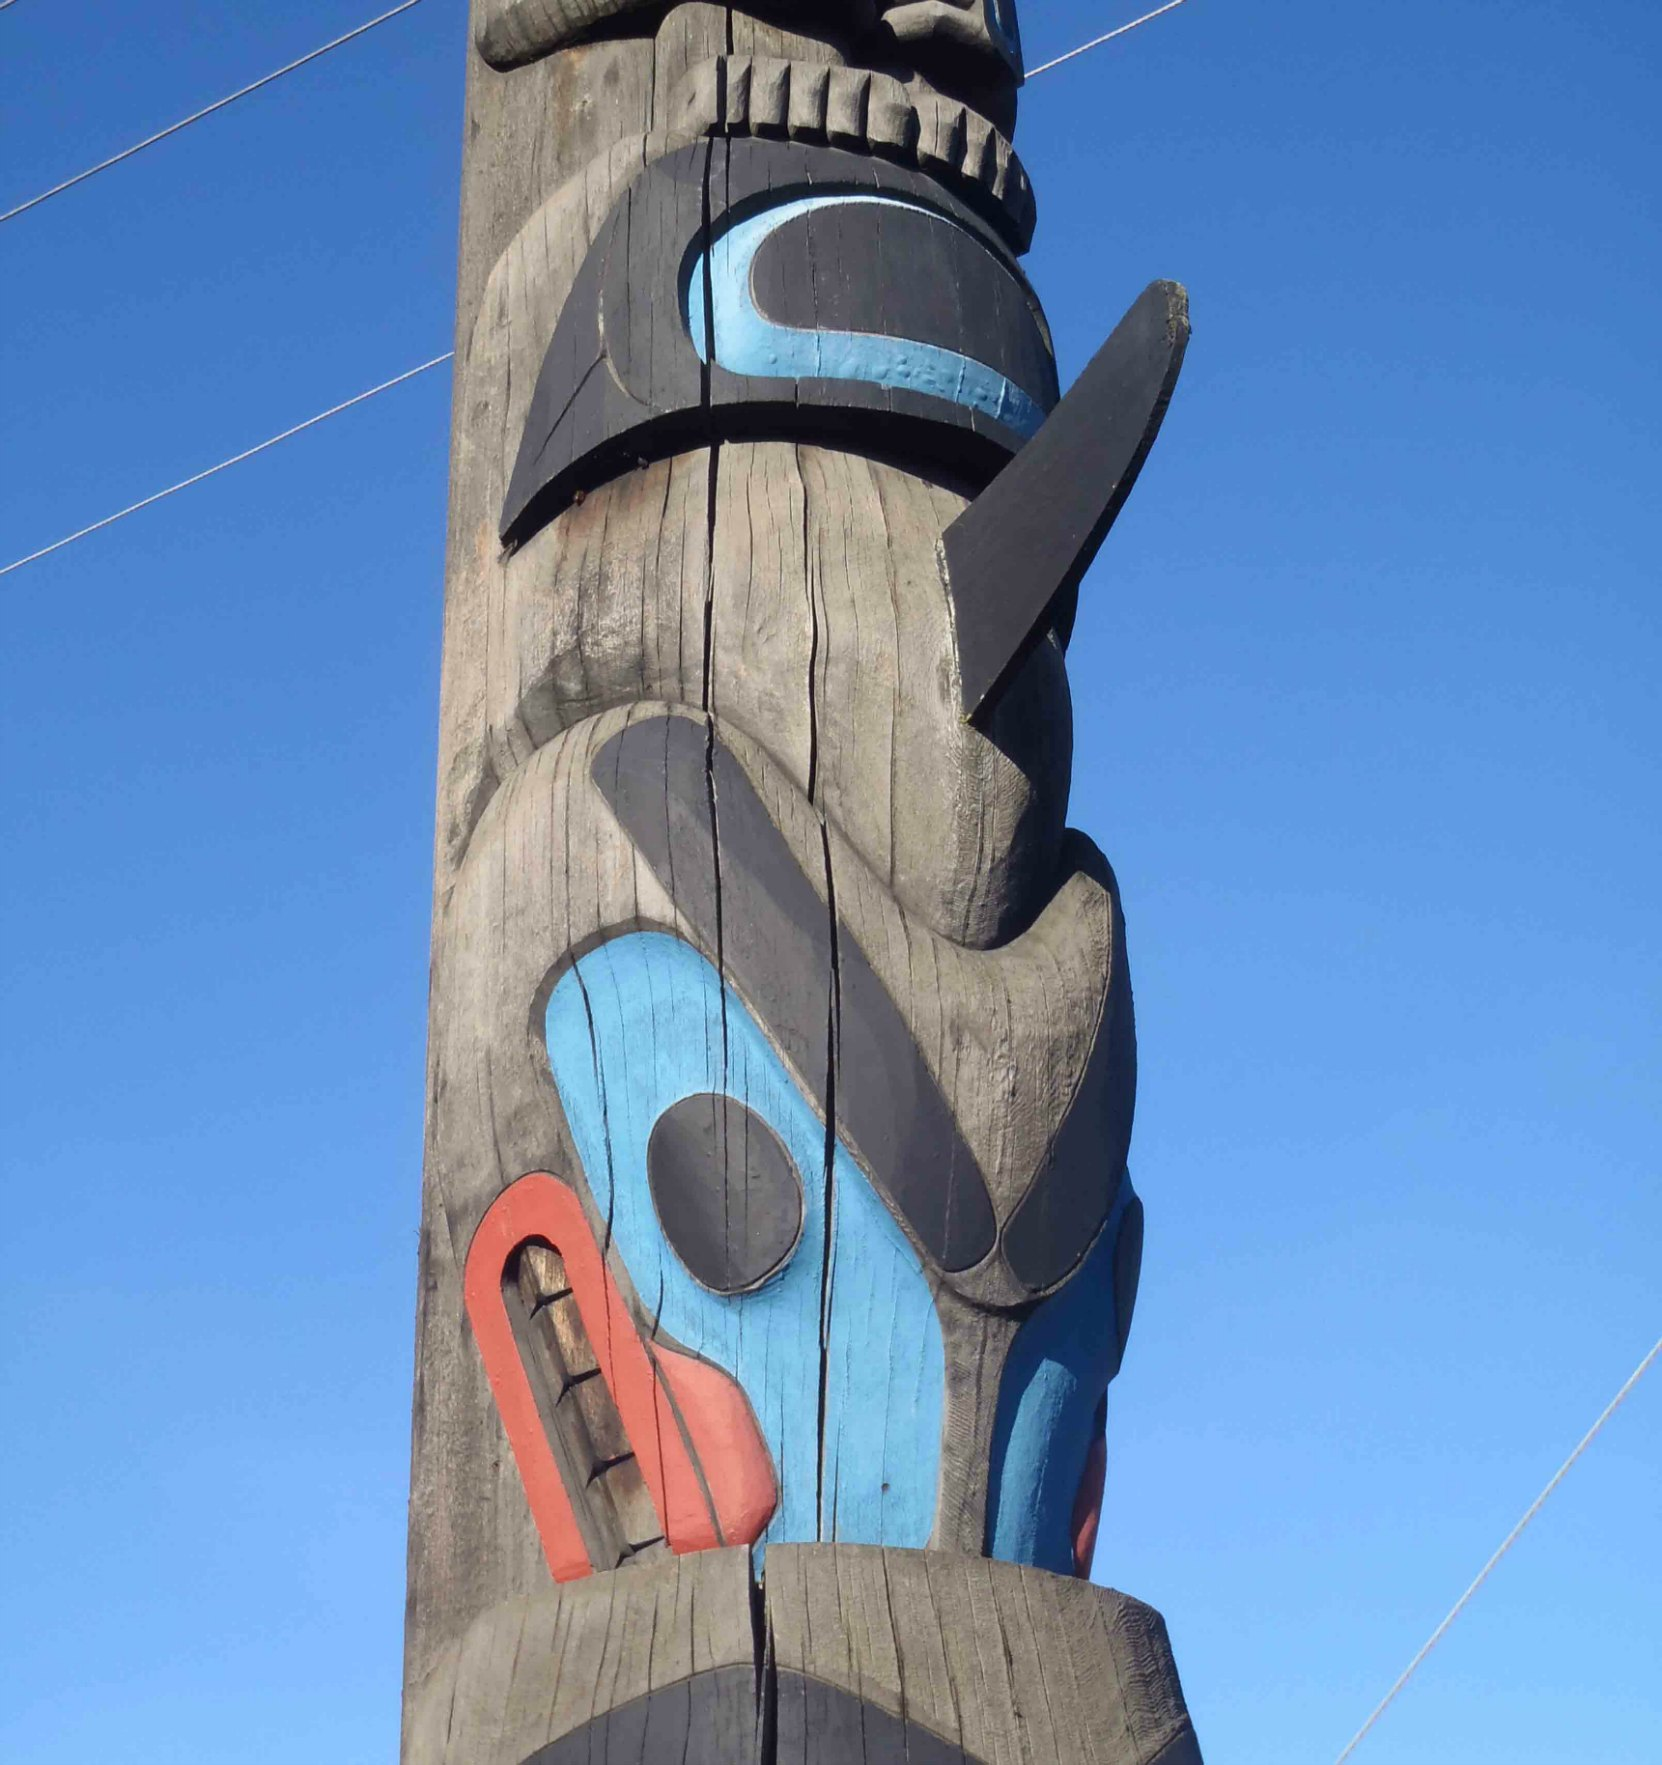 Chief's Pole, Killer Whale figure, Government Street at Kenneth Street, Duncan, B.C.